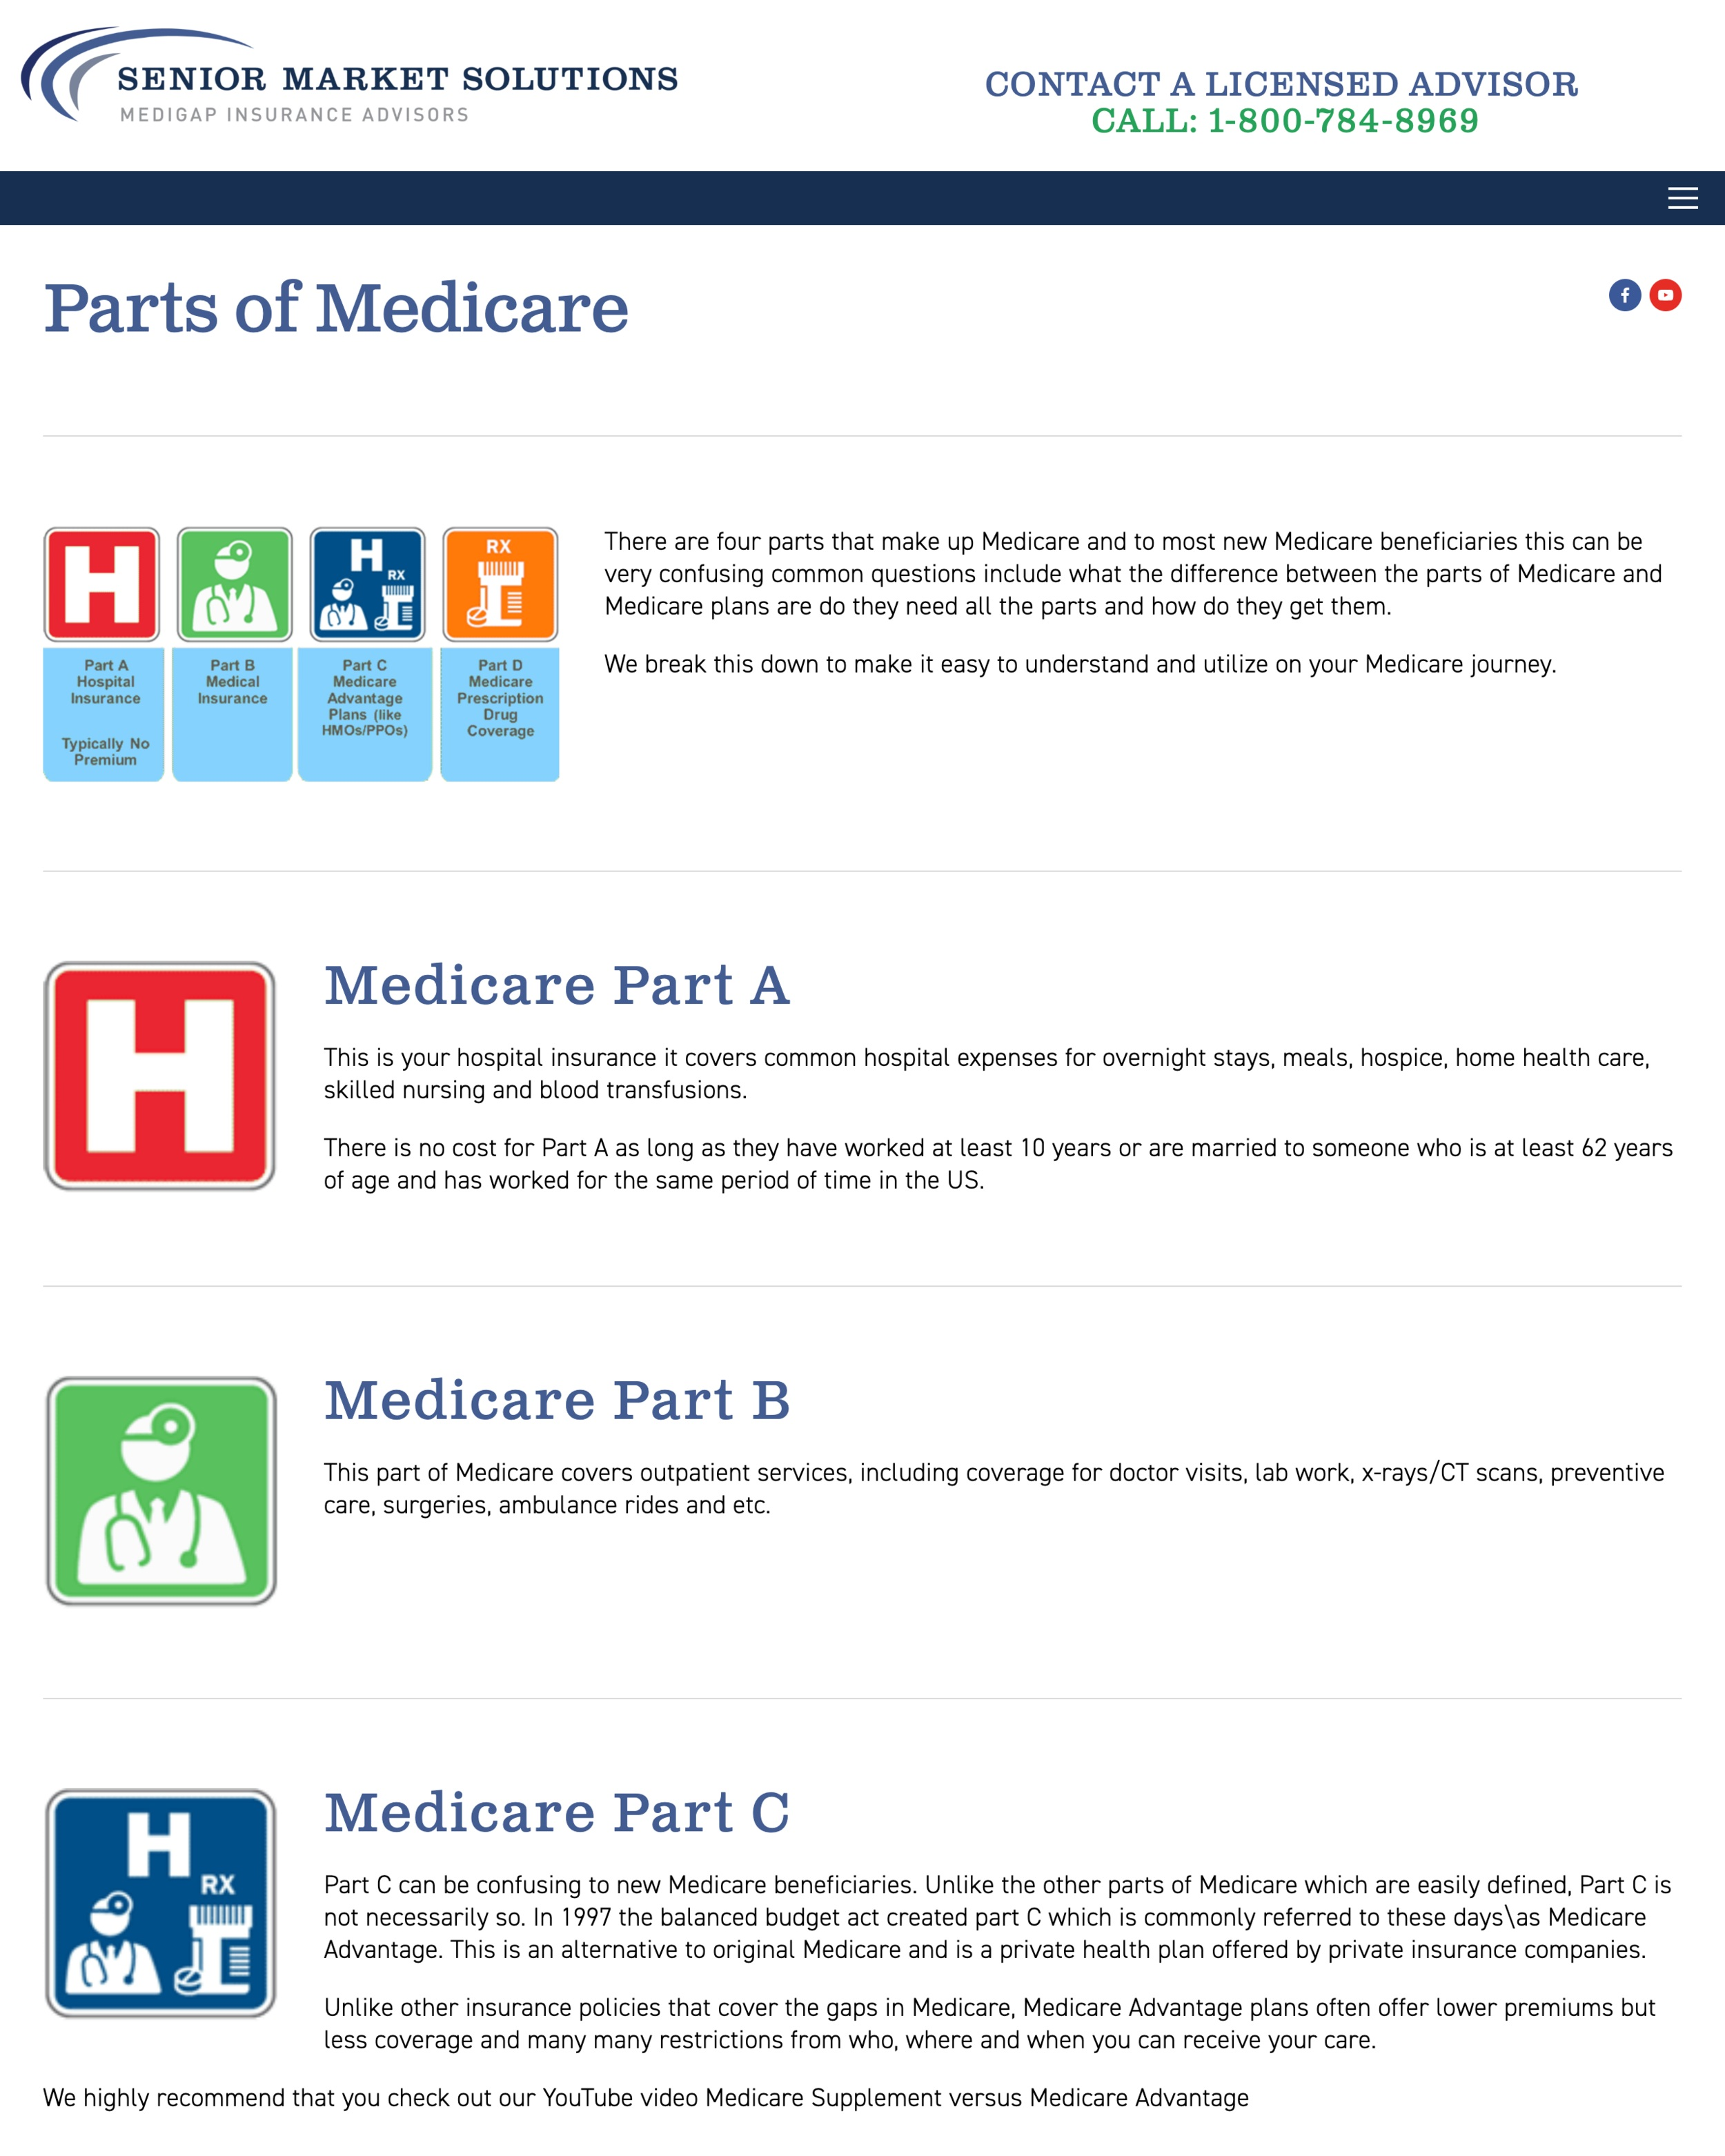 screencapture-seniormarketsolutions-medicare-parts-2019-08-12-17_34_32.png